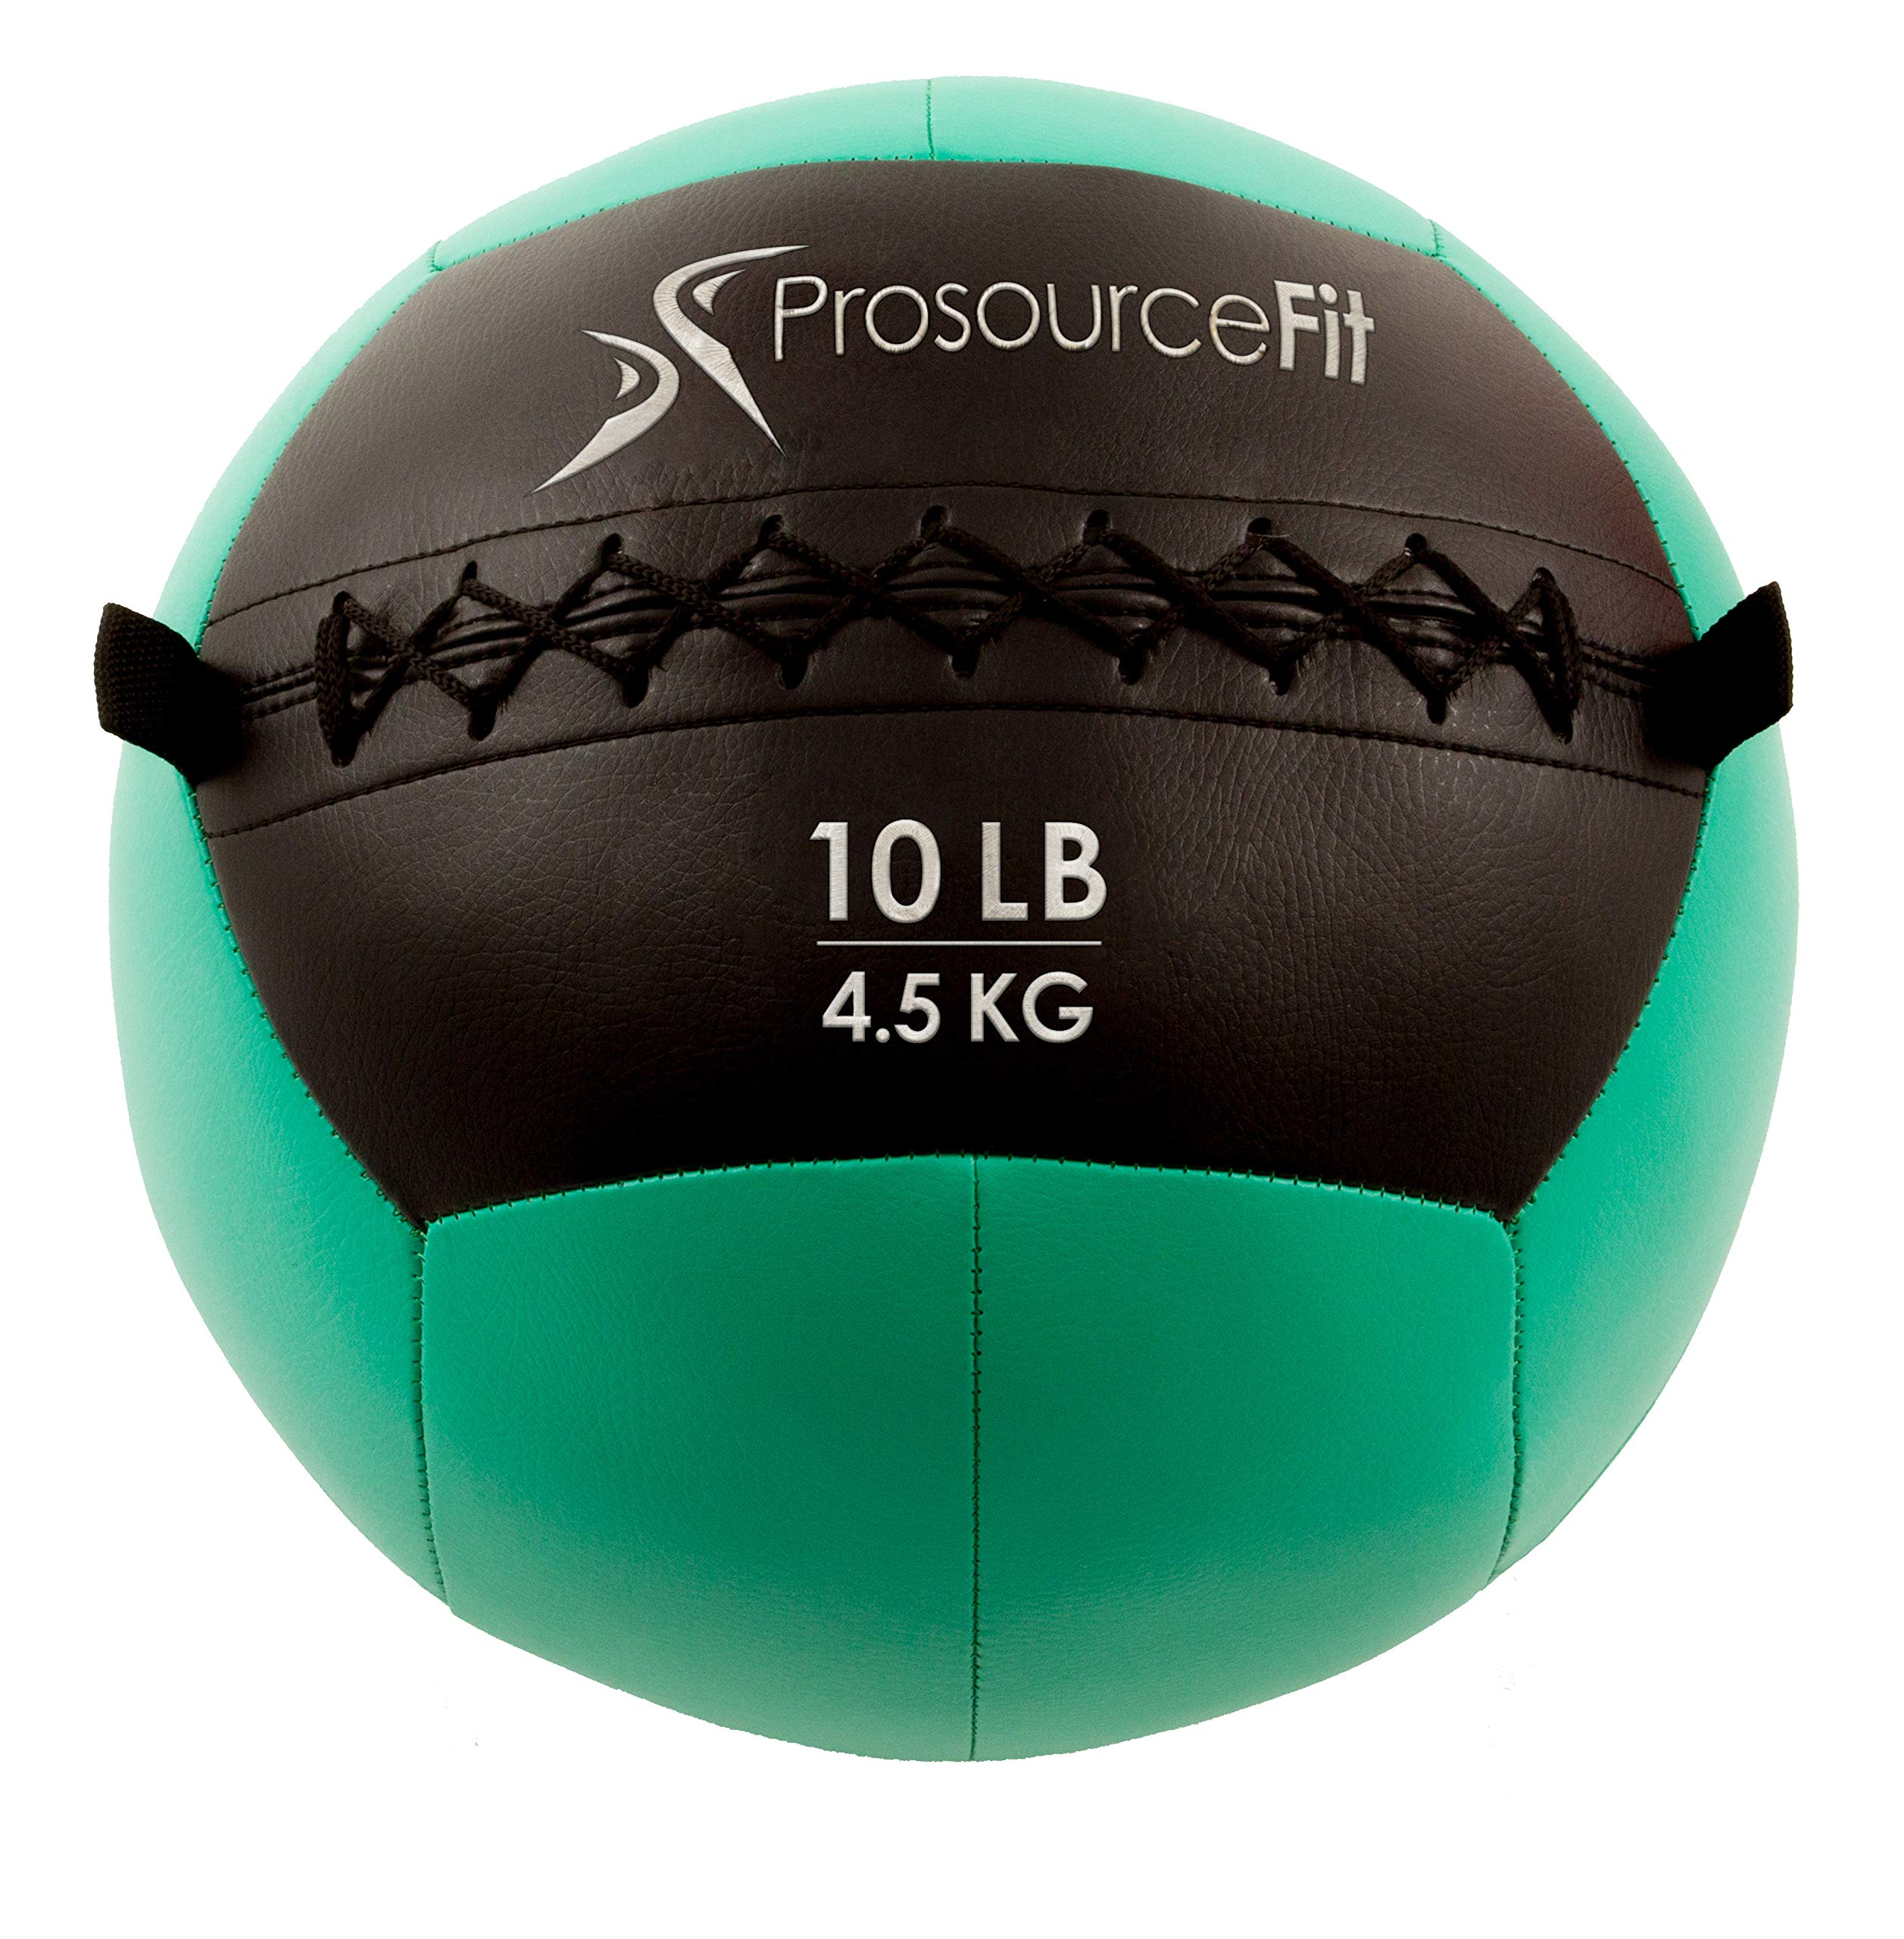 ProsourceFit Soft Medicine Balls for Wall Balls and Full Body Dynamic Exercises, Color-Coded Weights: 10 lb